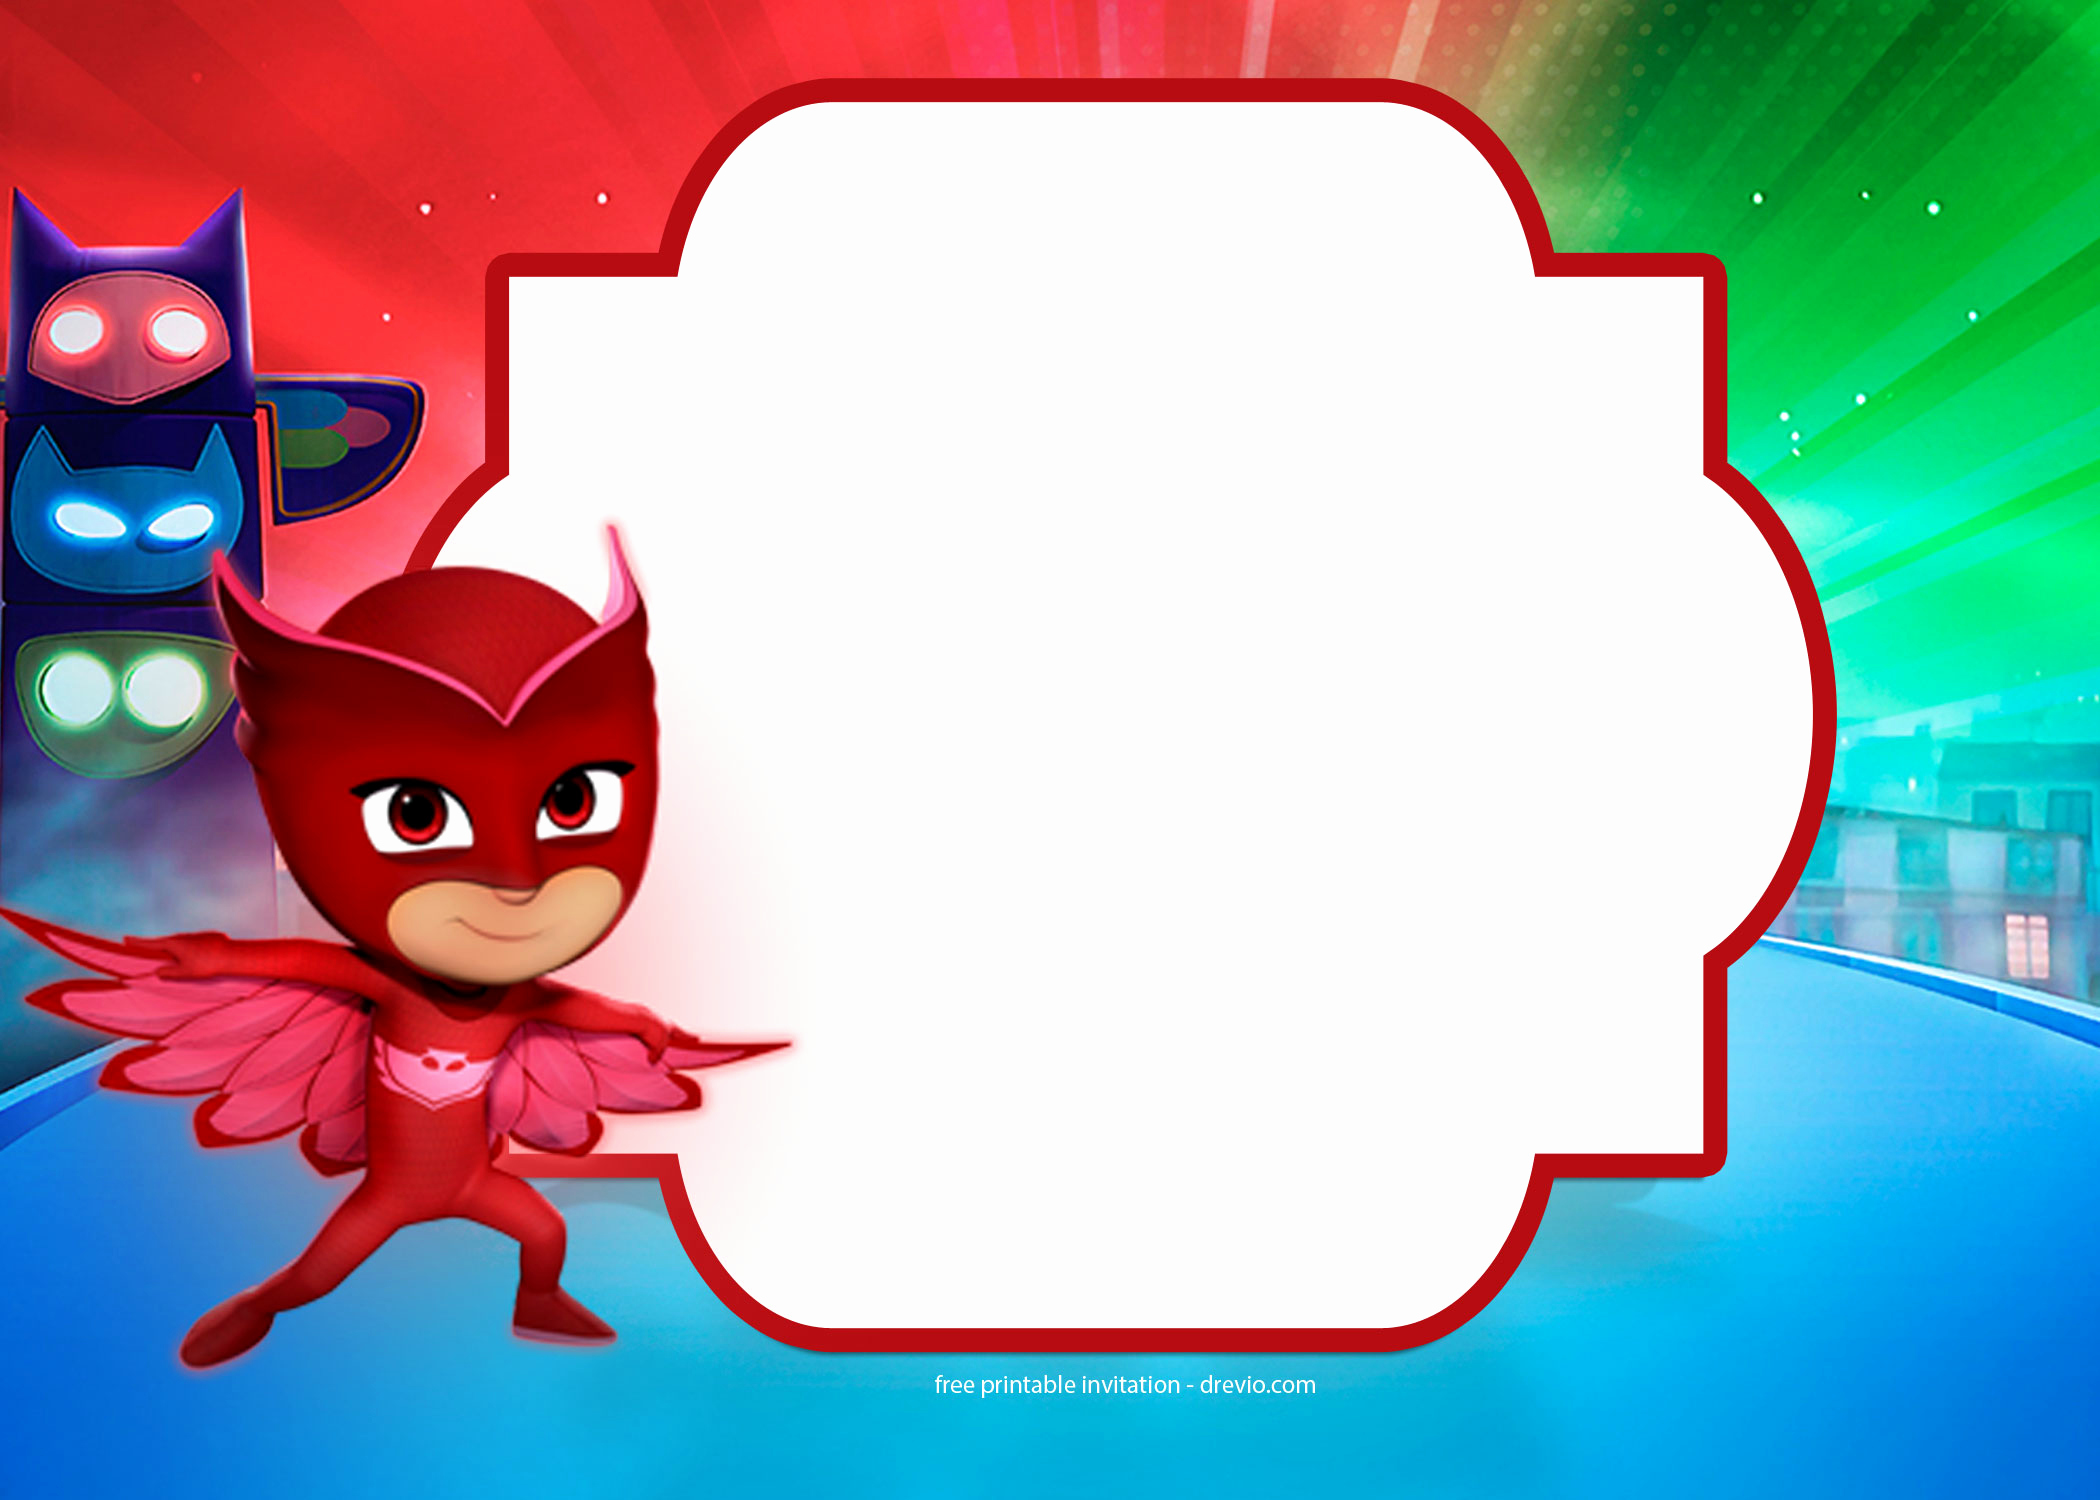 Pj Mask Invitation Free Beautiful Free Pj Masks Birthday Invitation Templates